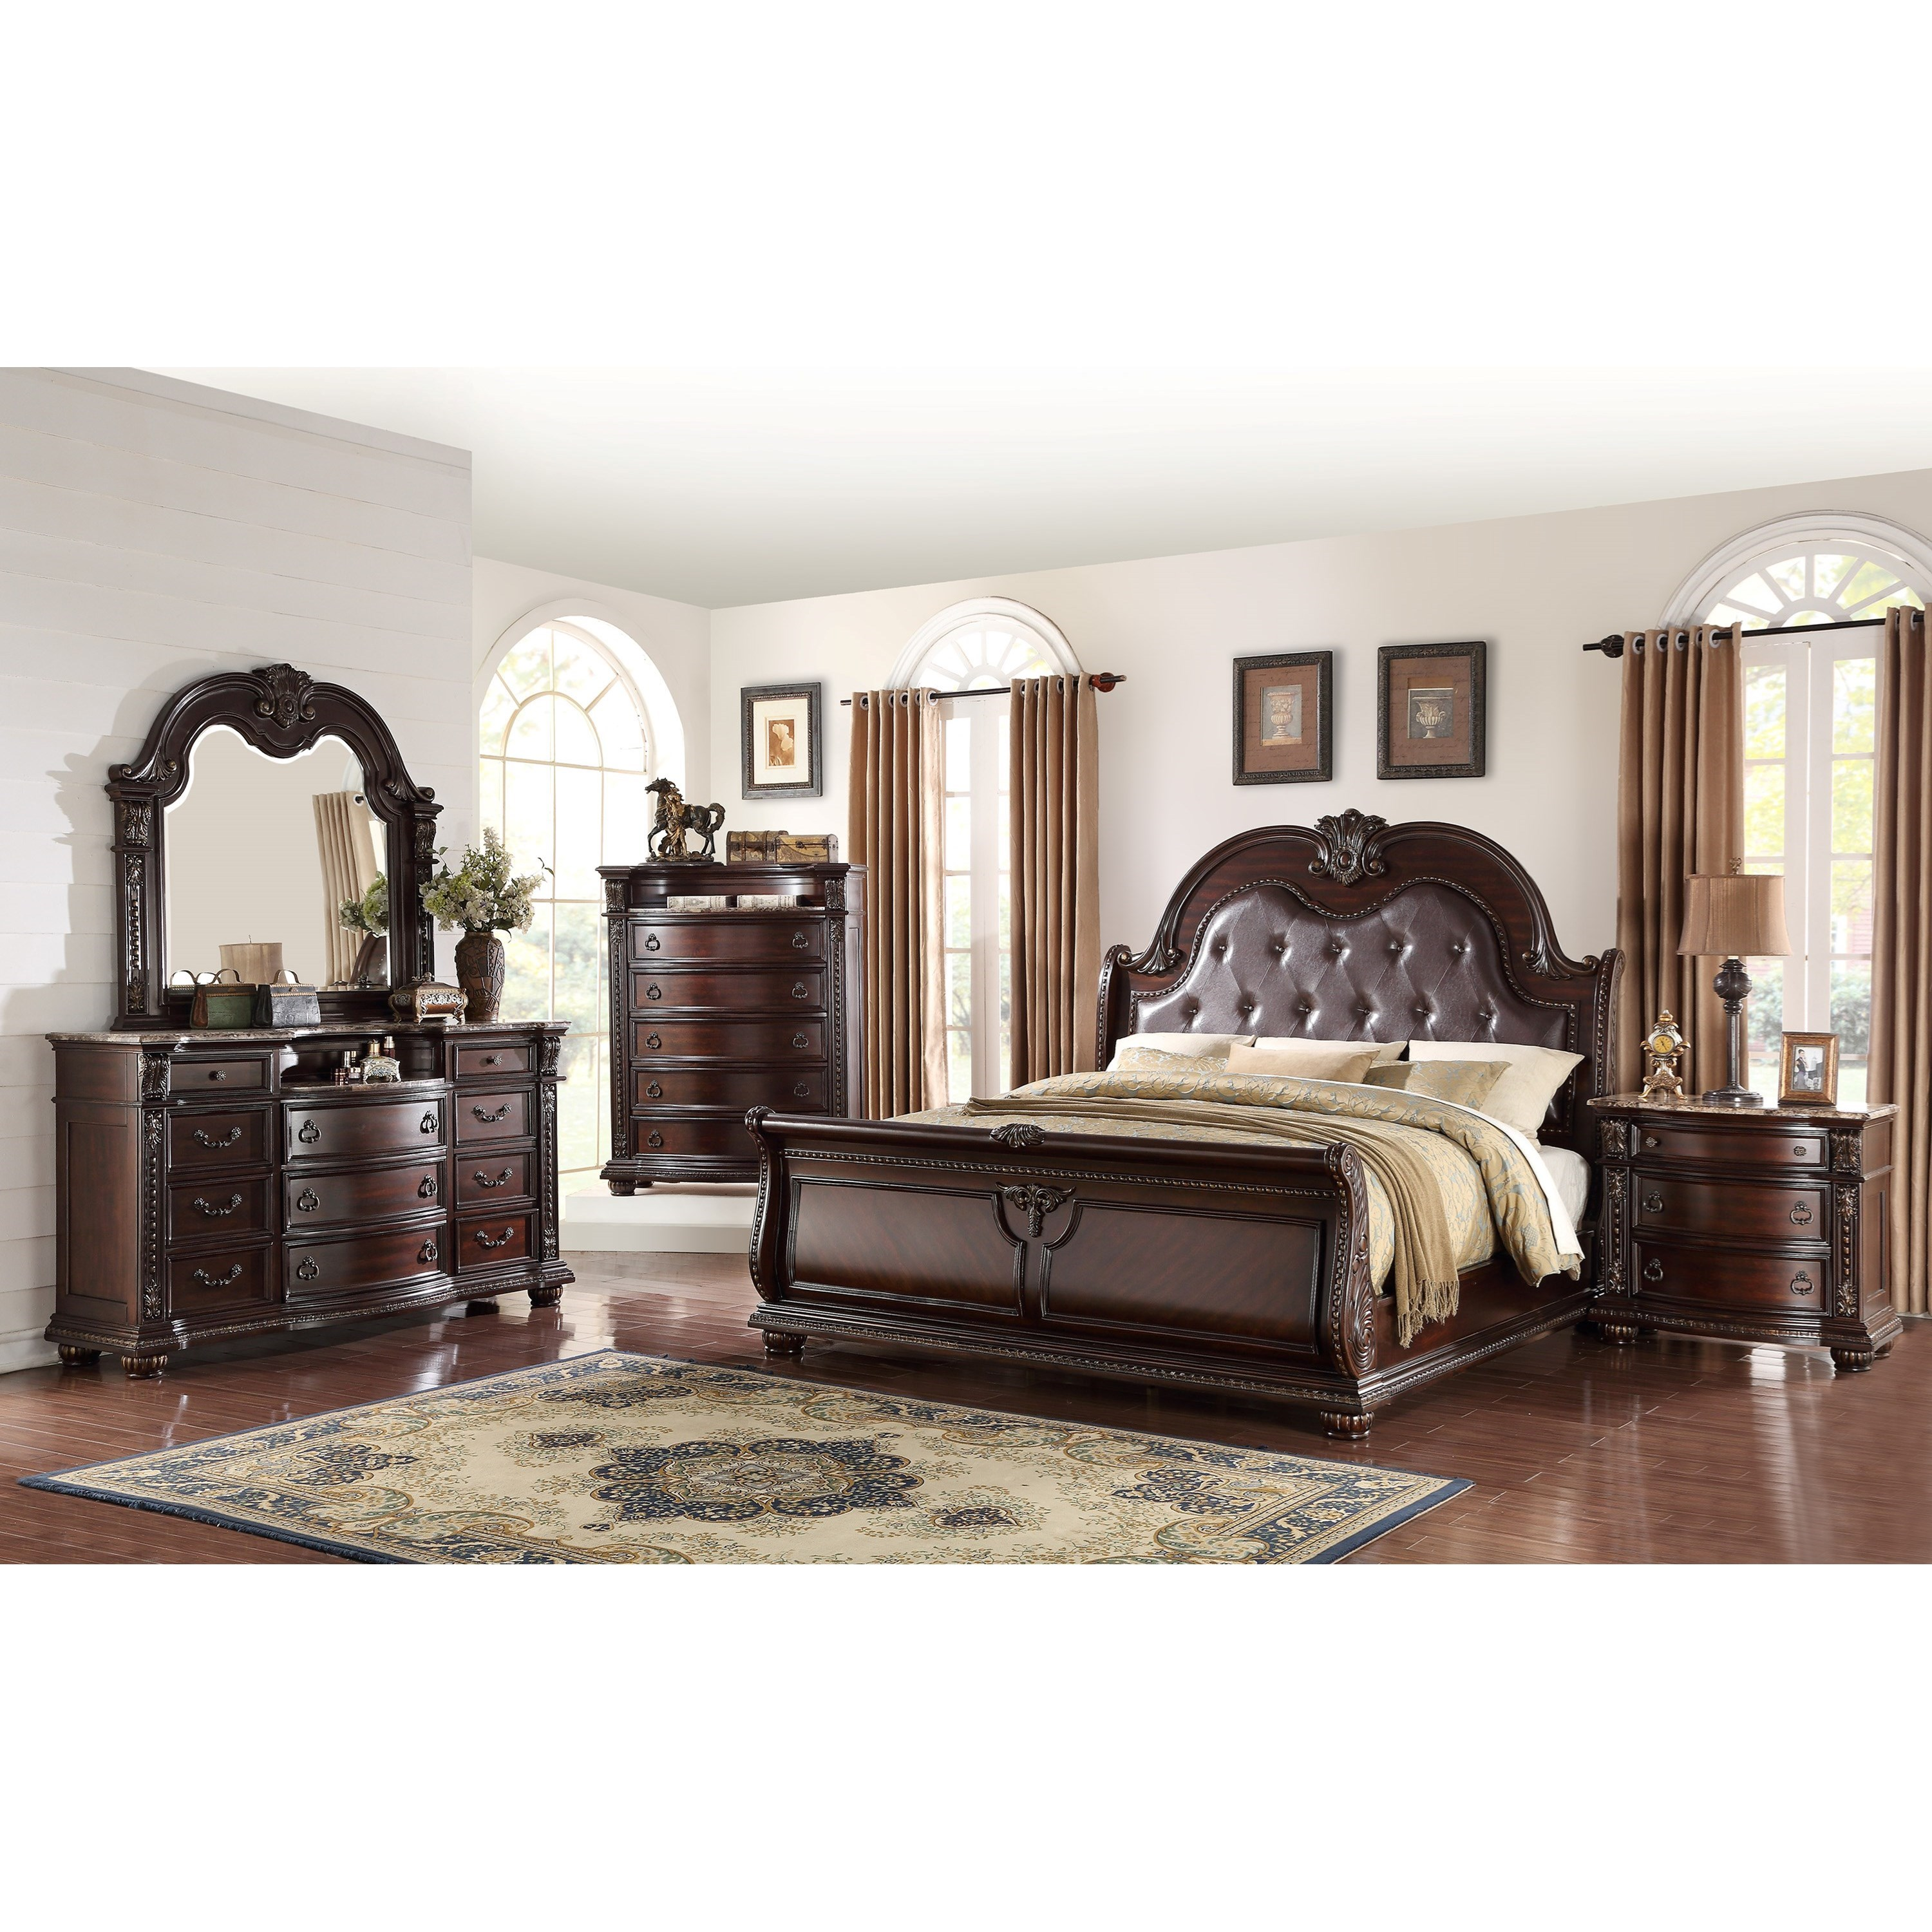 Stanley Bedroom California King Bedroom Group by Crown Mark at Northeast Factory Direct